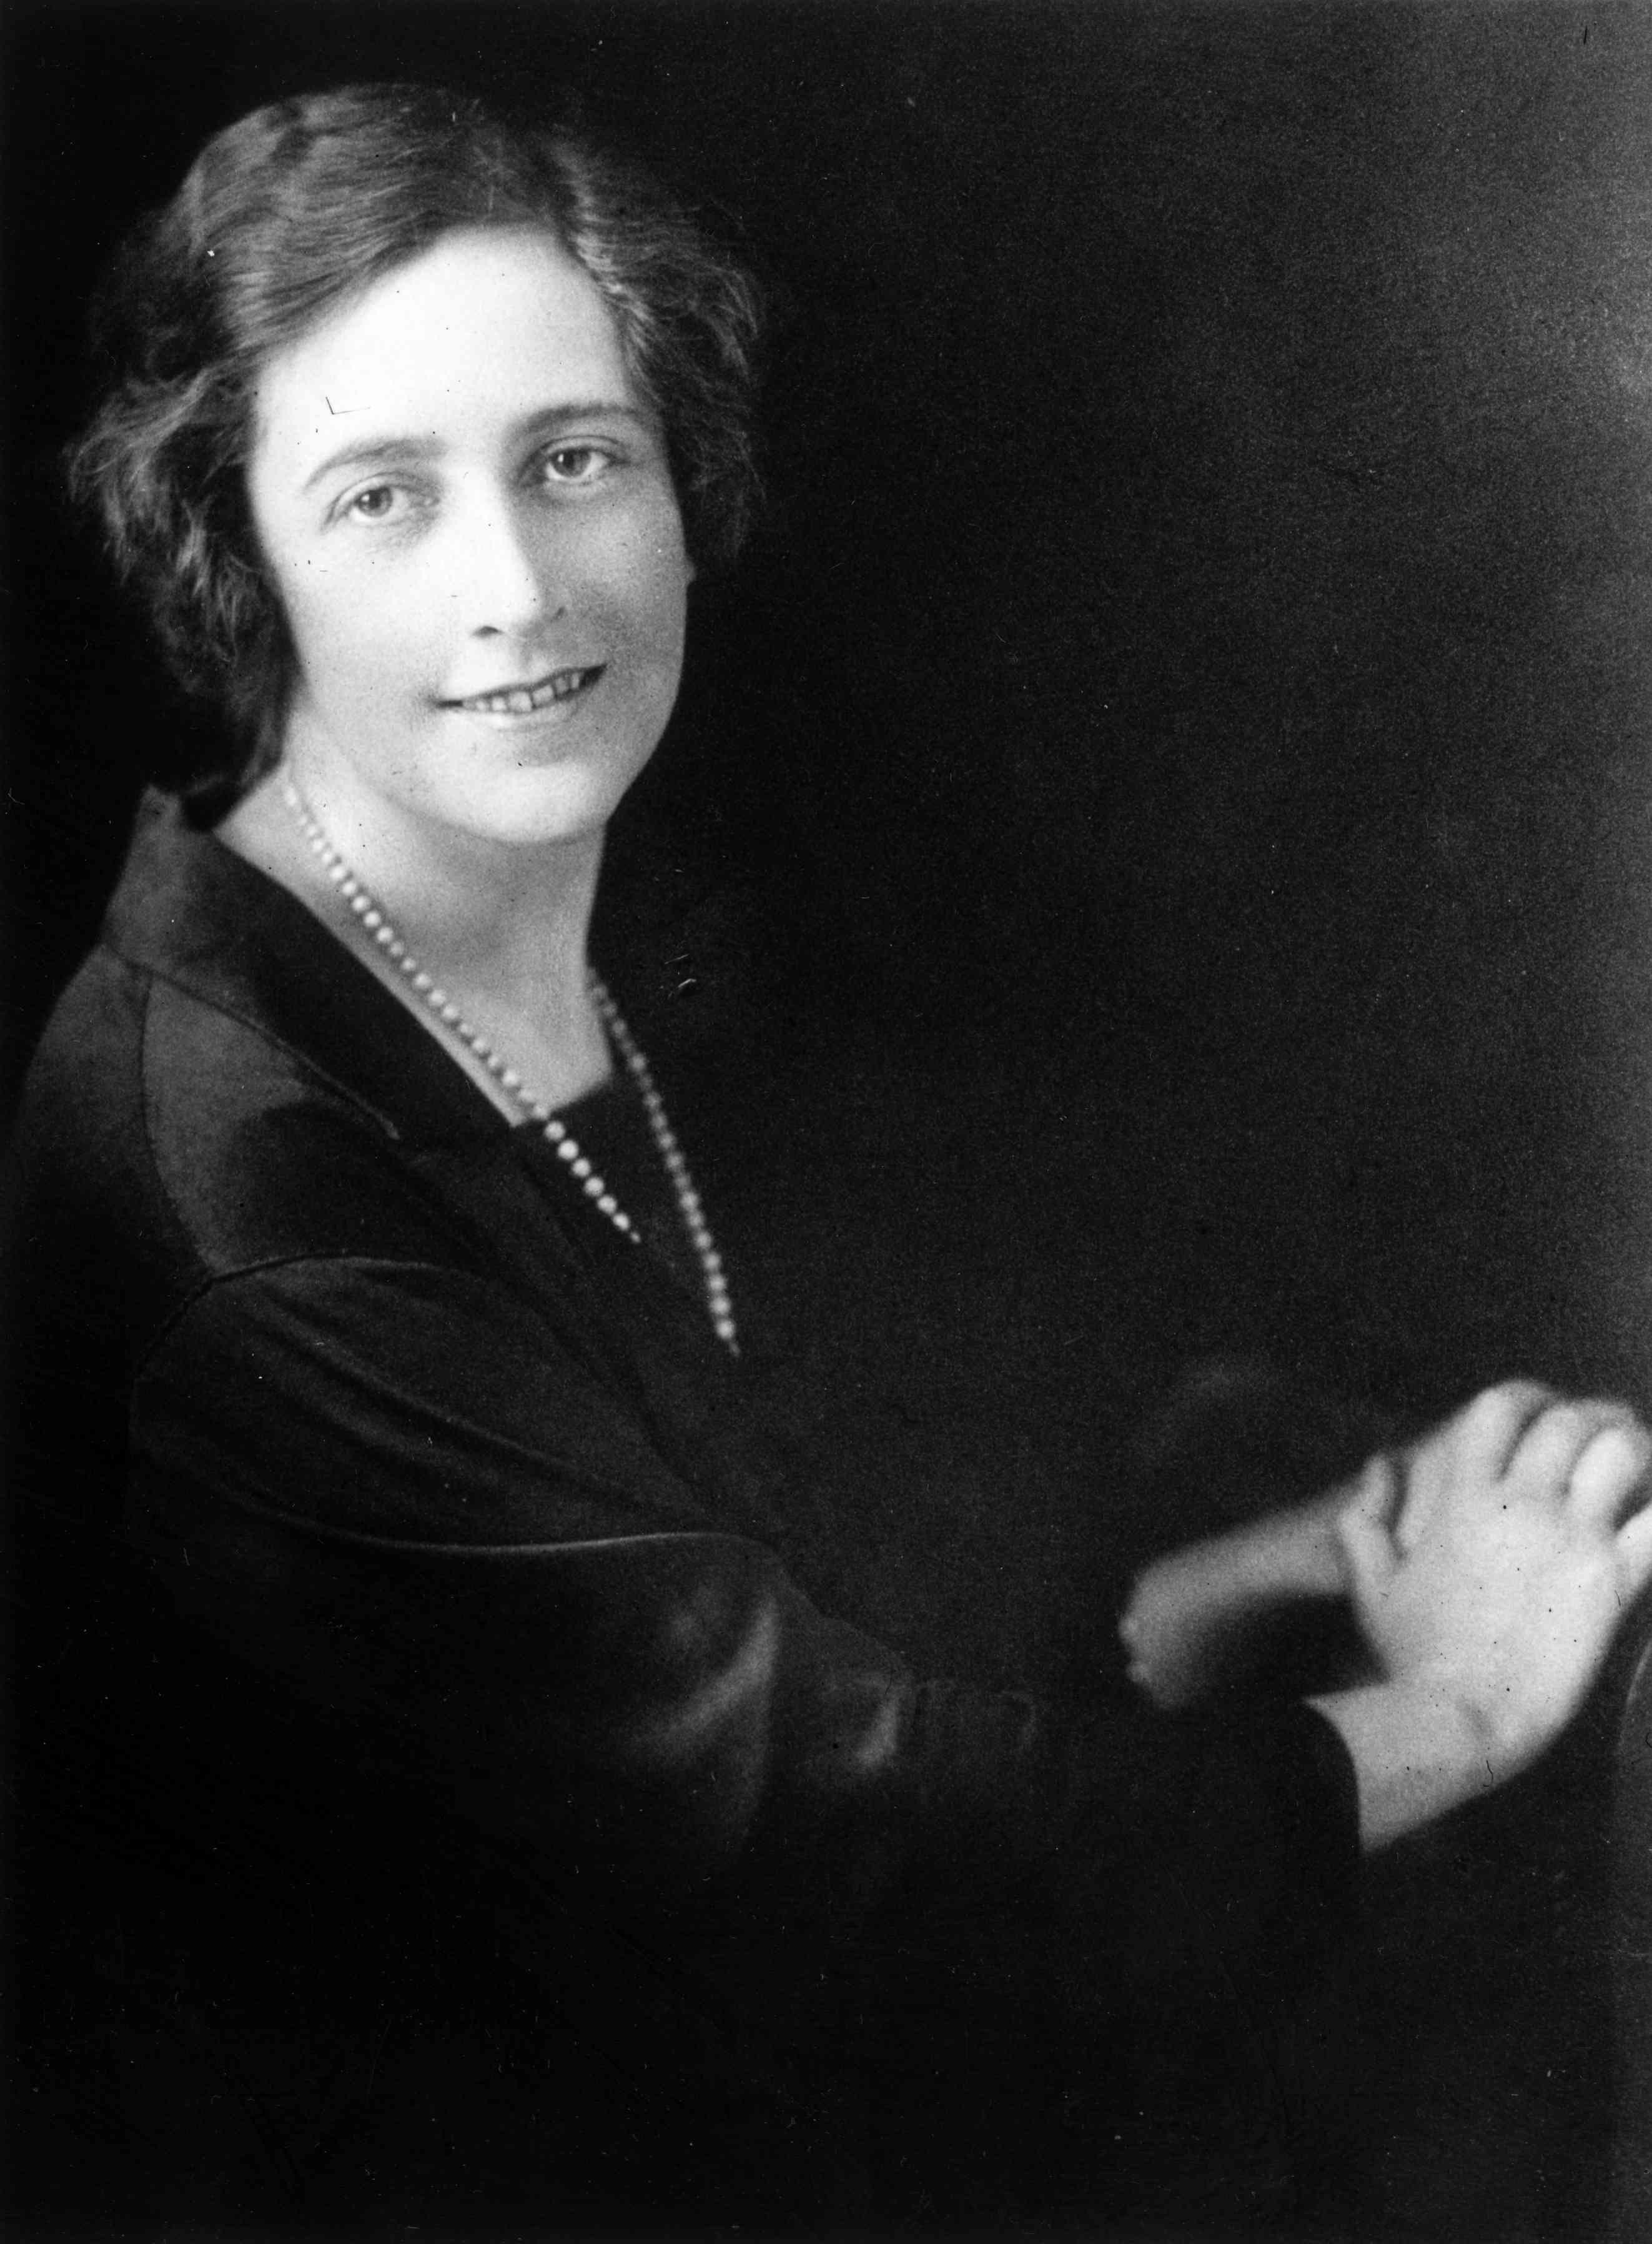 Portrait of young Agatha Christie